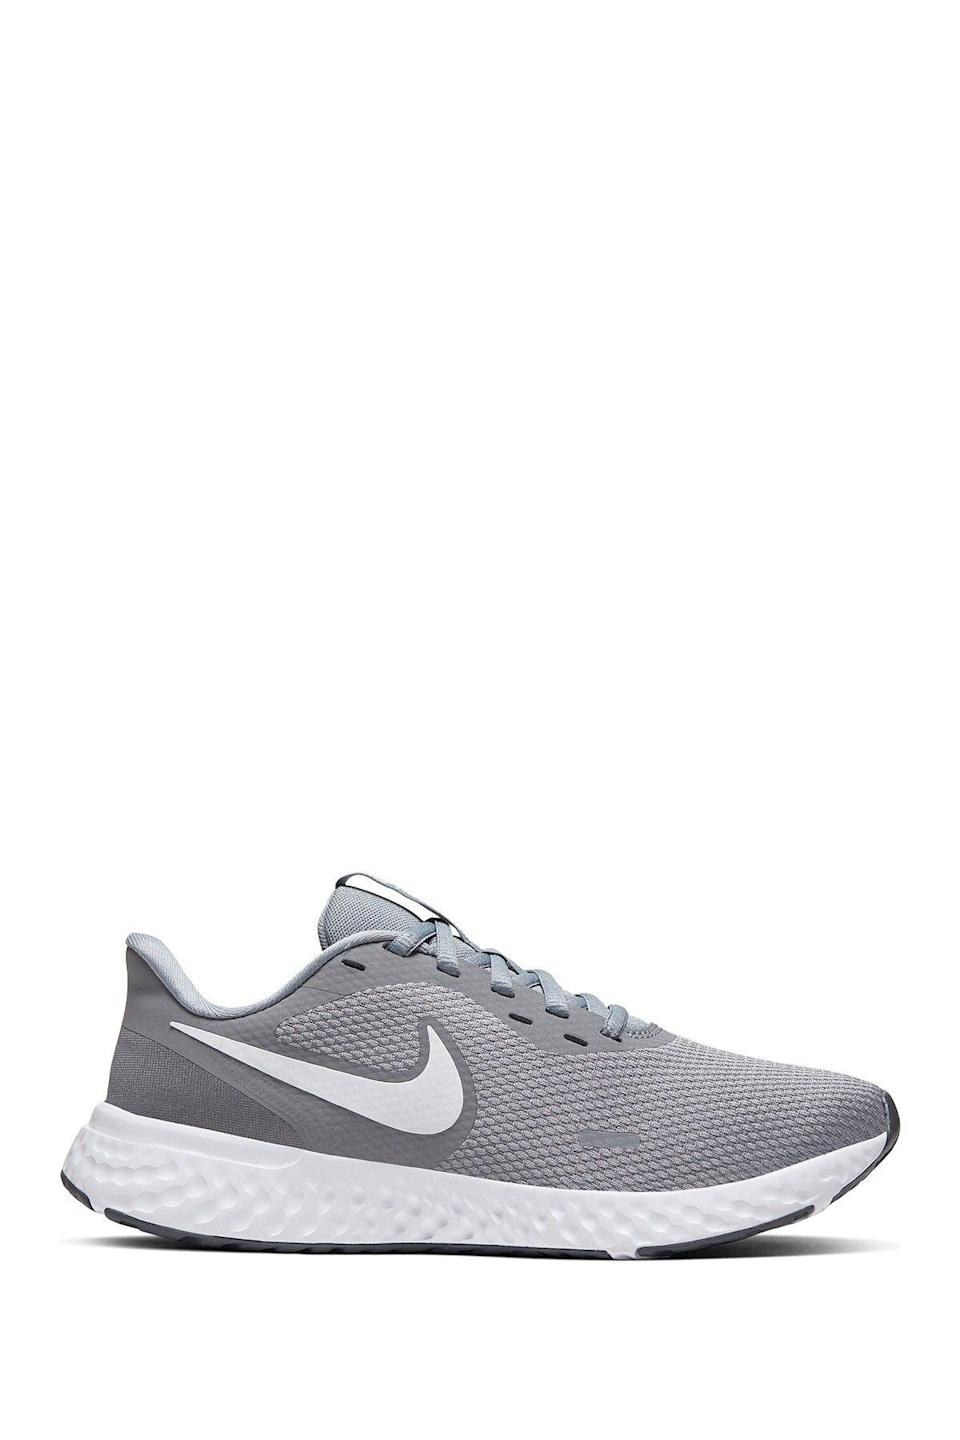 """<p><strong>Nike</strong></p><p>nordstromrack.com</p><p><a href=""""https://go.redirectingat.com?id=74968X1596630&url=https%3A%2F%2Fwww.nordstromrack.com%2Fshop%2Fproduct%2F2930548&sref=https%3A%2F%2Fwww.womenshealthmag.com%2Fstyle%2Fg33534500%2Fnordstrom-rack-nike-sale%2F"""" rel=""""nofollow noopener"""" target=""""_blank"""" data-ylk=""""slk:Shop Now"""" class=""""link rapid-noclick-resp"""">Shop Now</a></p><p><del>$65</del><strong><br>$49.97</strong></p><p>Made with Nike's iconic knit material, this lightweight pair was designed with speedy sprints in mind.</p>"""